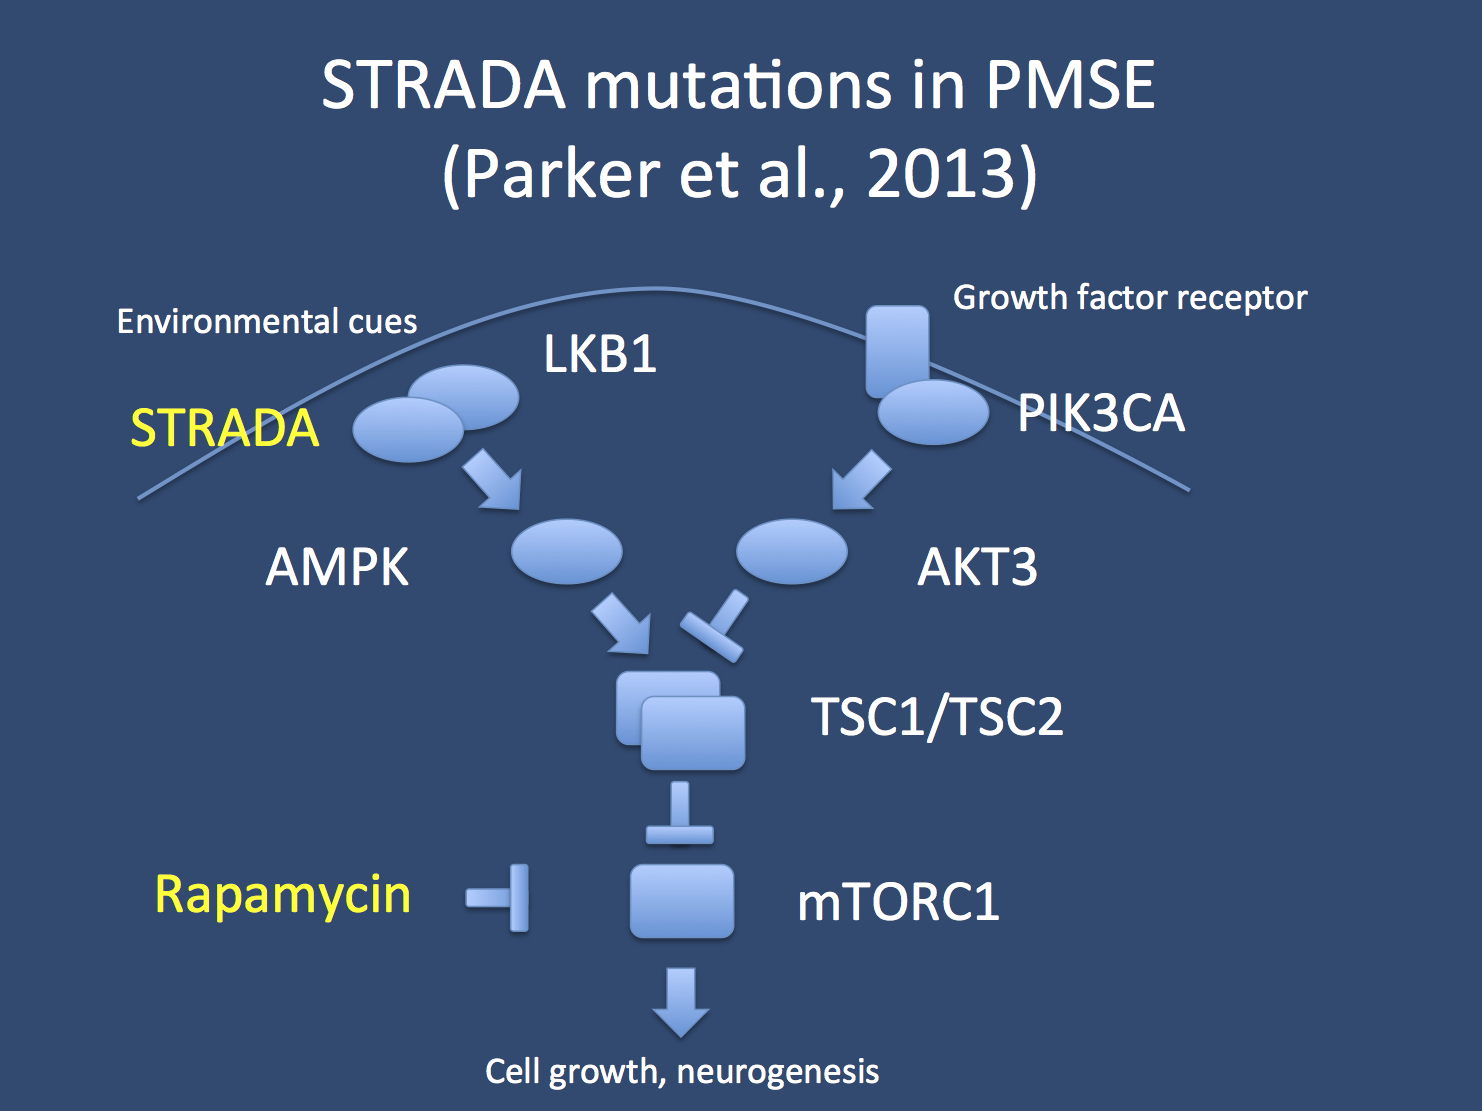 The mTOR pathway. Both environmental cues and signal mediated by growth factors impact on the mTOR pathway, which positively regulates cell growth and neurogenesis. Mutation in STRADA coding for the TE20-related kinase adaptor alpha eventually lead to a reduced activity of TSC1/TSC2, which, in turn, leads to increased mTOR activation. Mutation in STRADA cause polyhydramnios, megalencephaly and symptomatic epilepsy syndrome (PMSE). In the current paper, Parker and colleagues demonstrate that application of sirolimus (rapamycin) can lead to a drastic reduction in seizure frequency in PMSE.